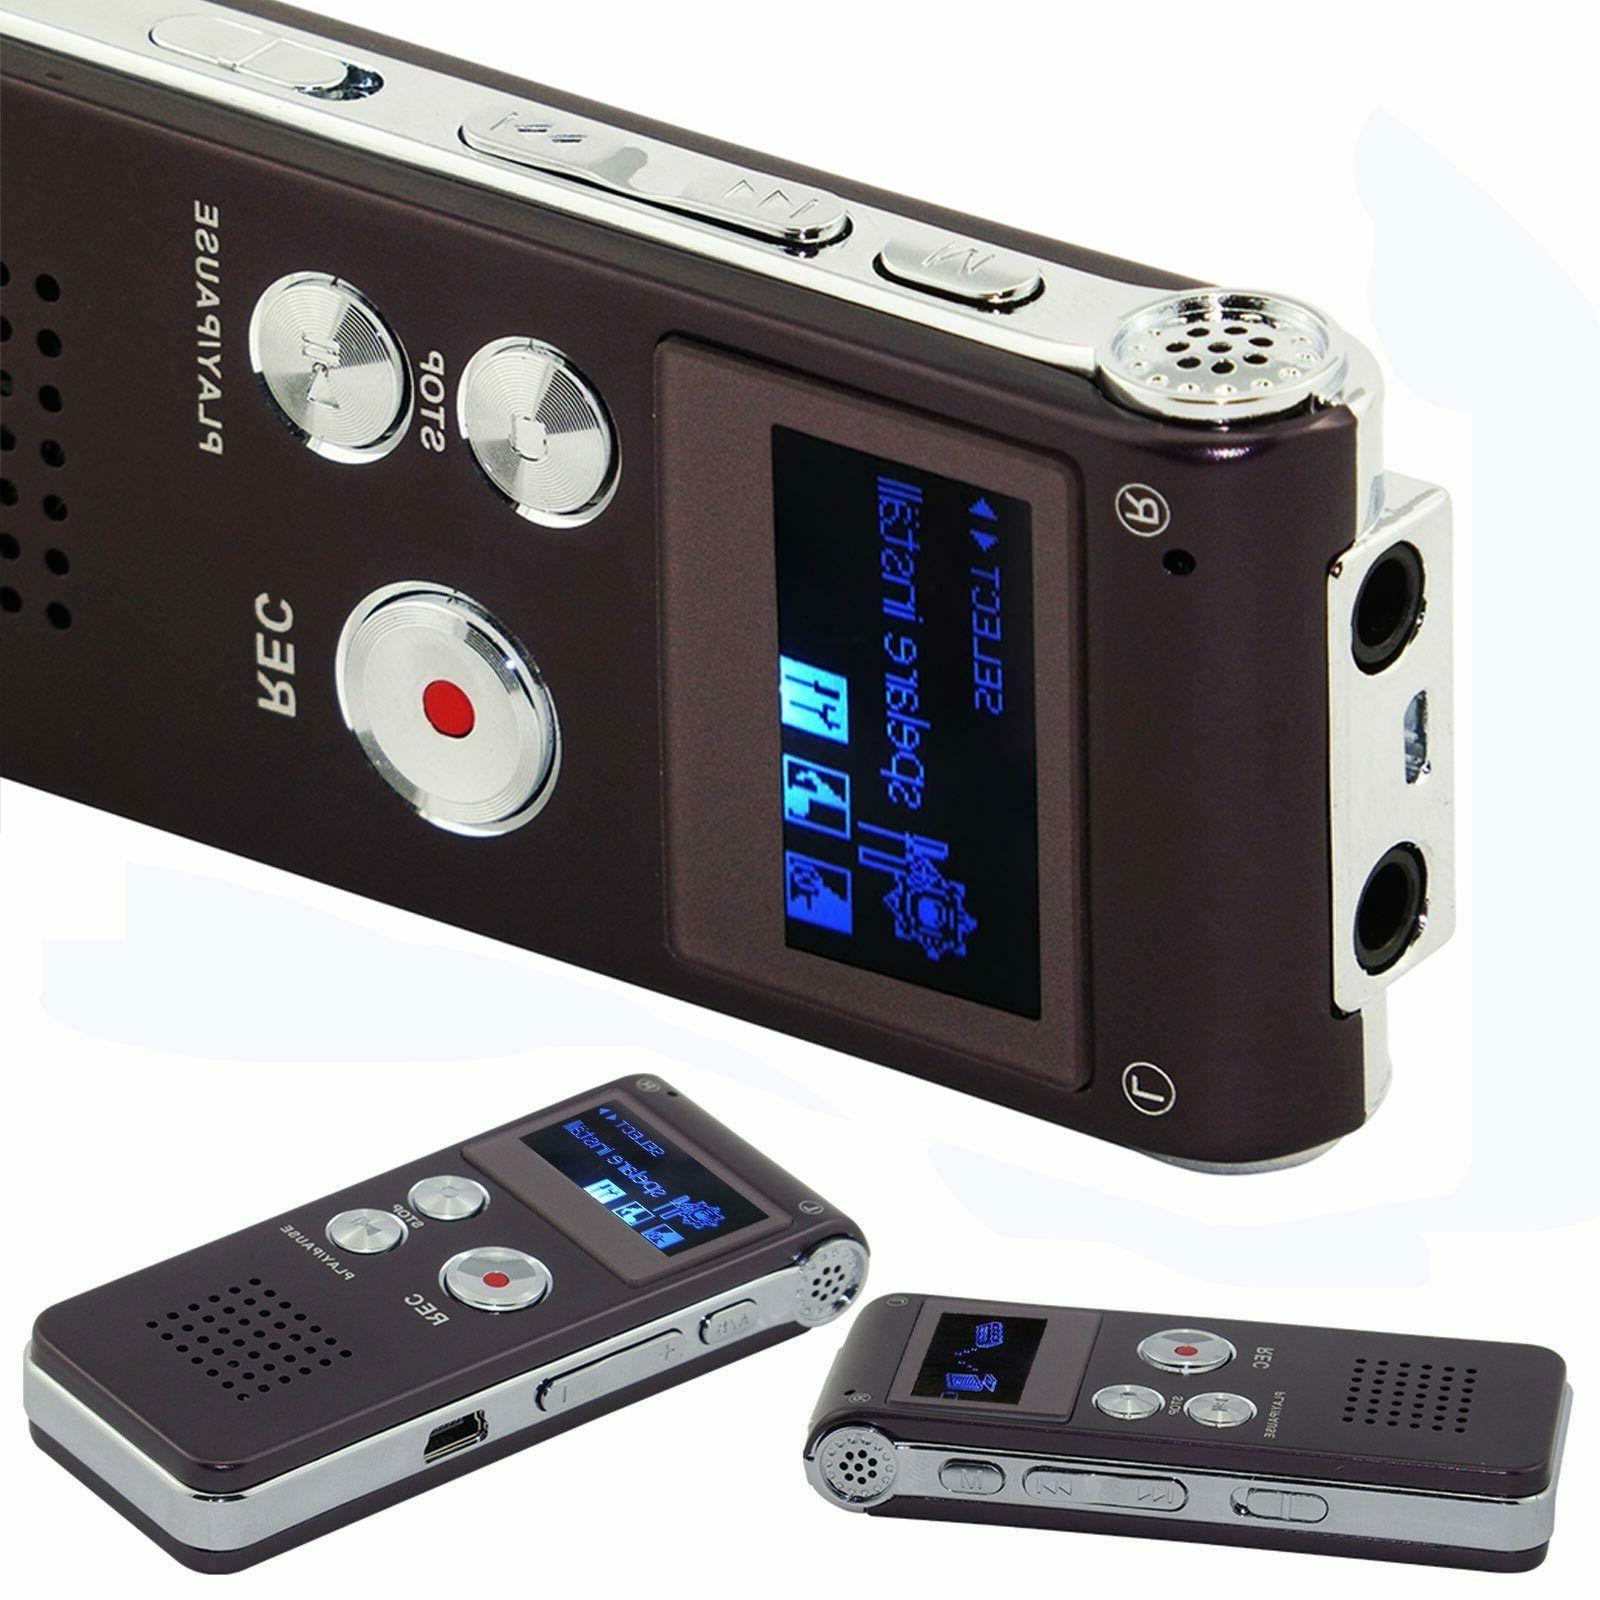 8GB USB Rechargeable Digital Sound Voice Recorder Dictaphone Player